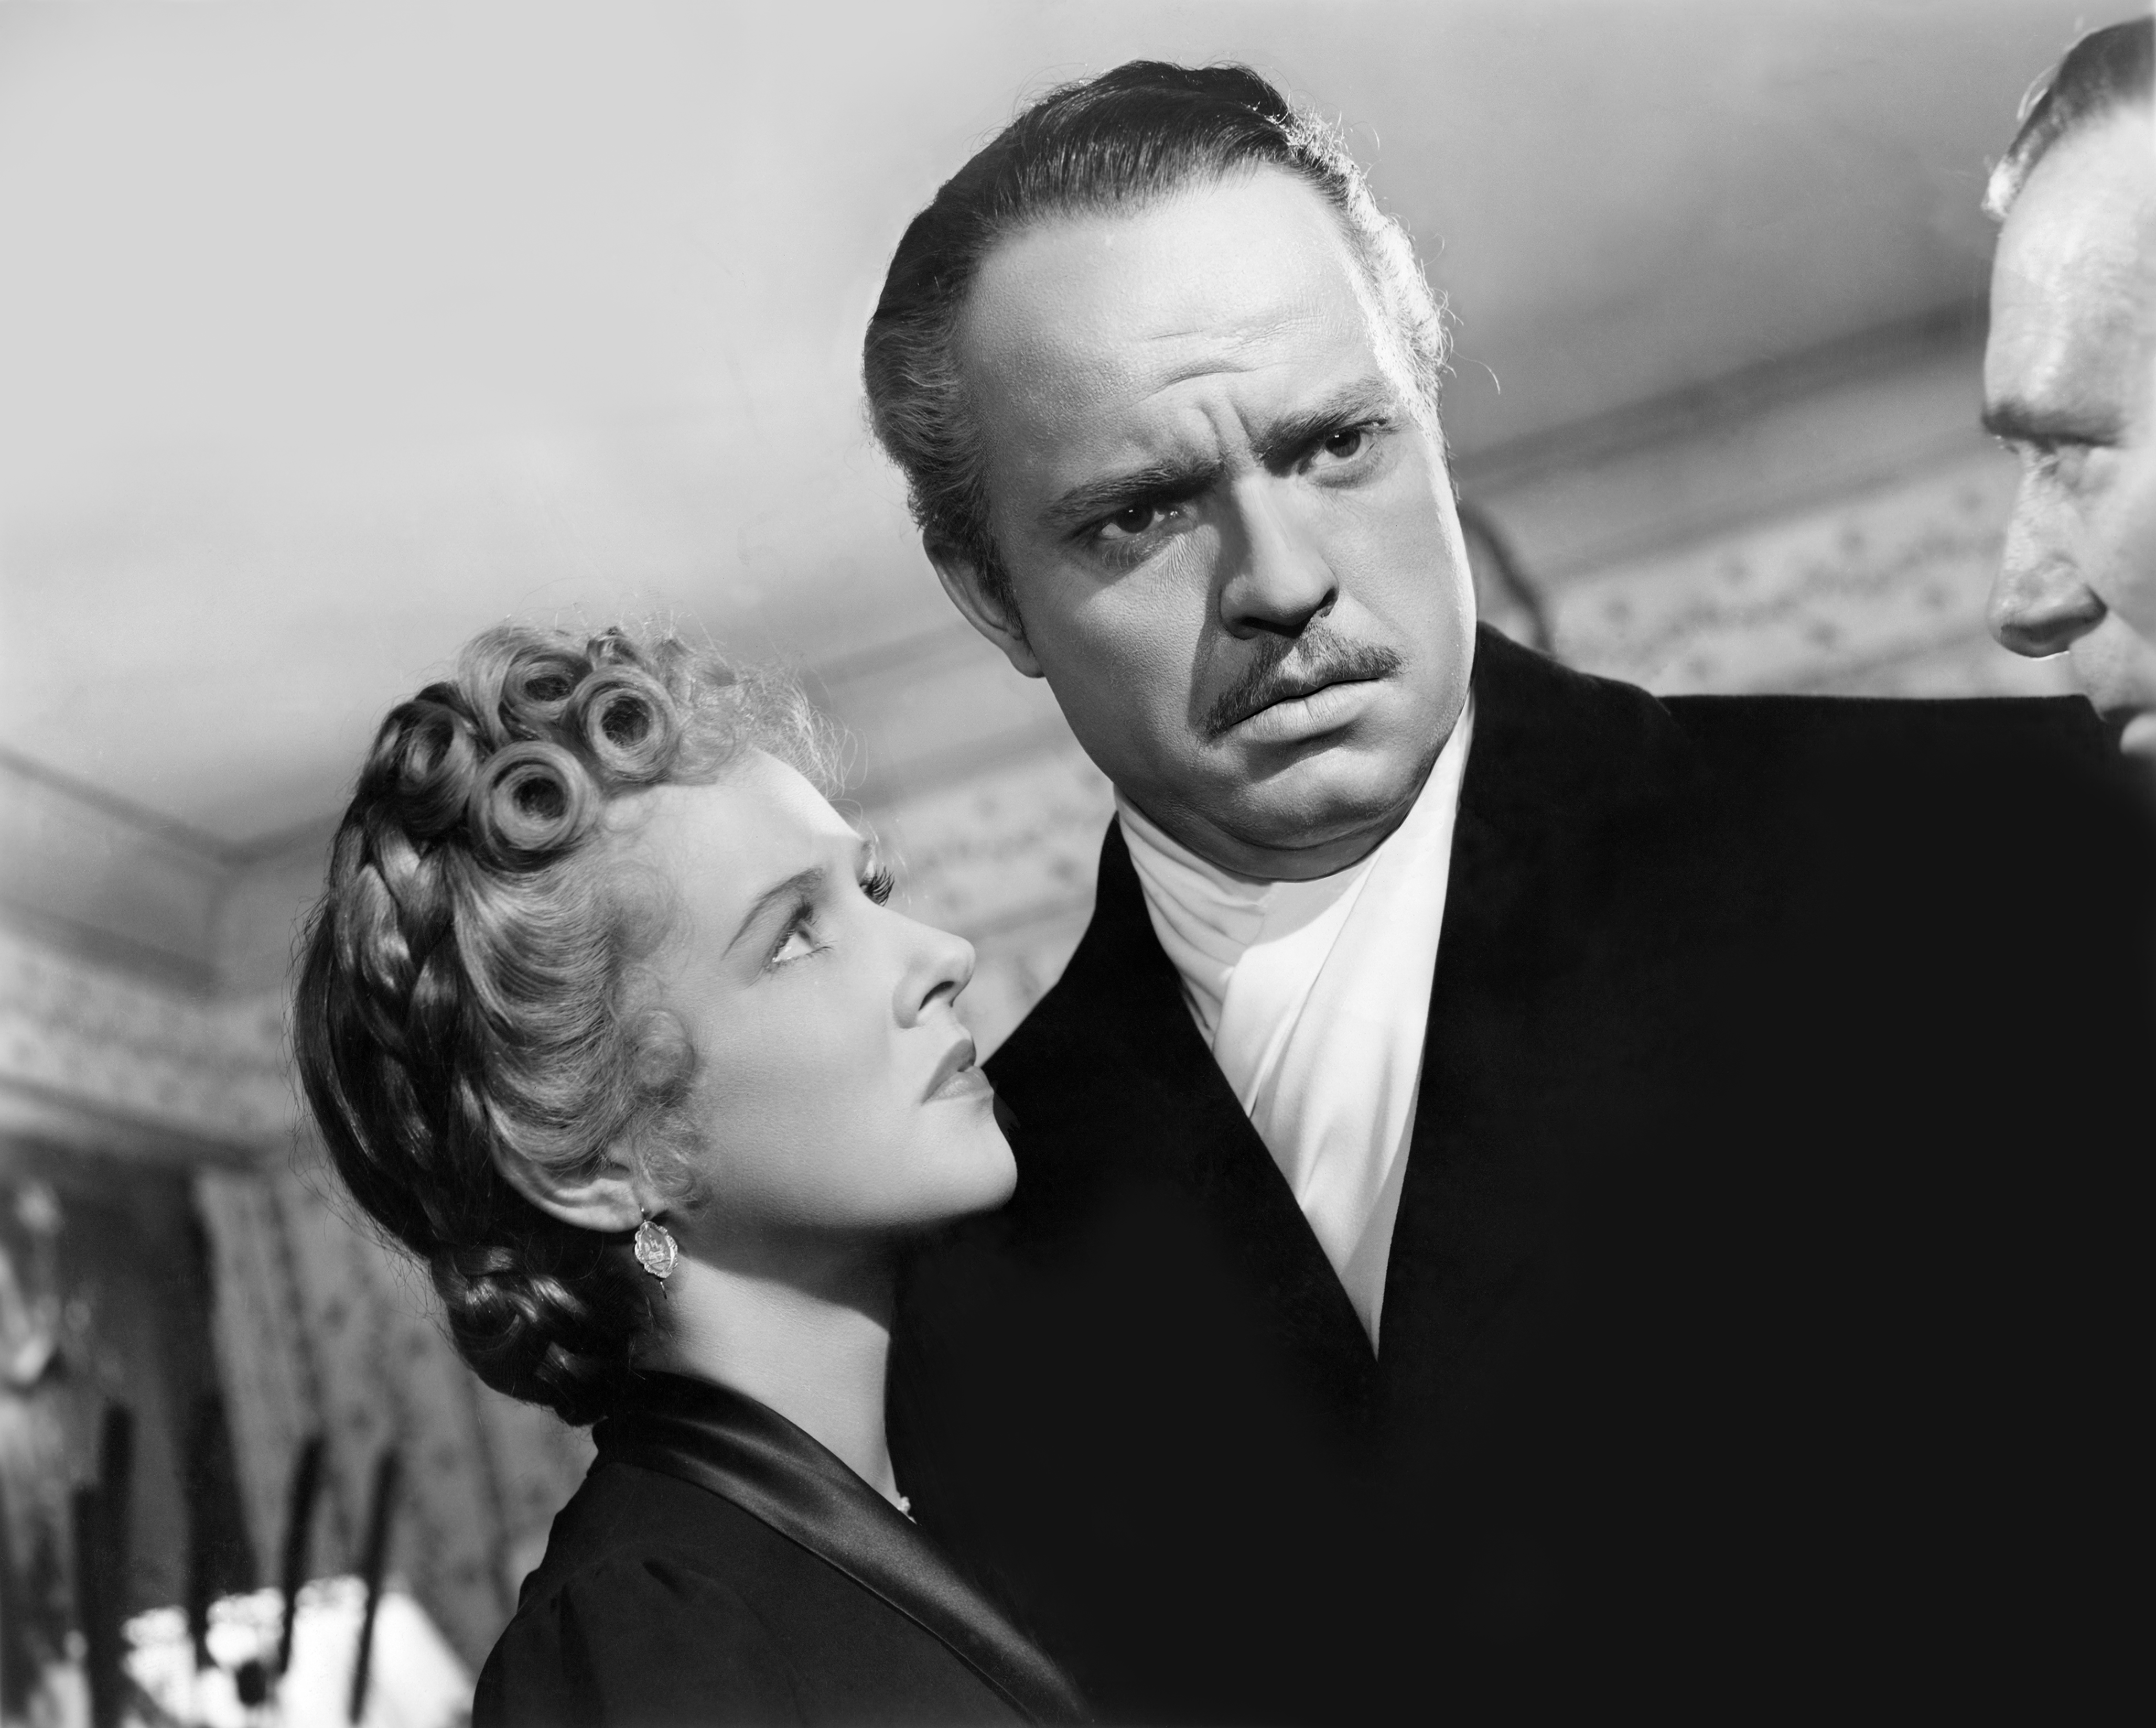 citizen kane on org citizen kane citizen kane comingore welles collins